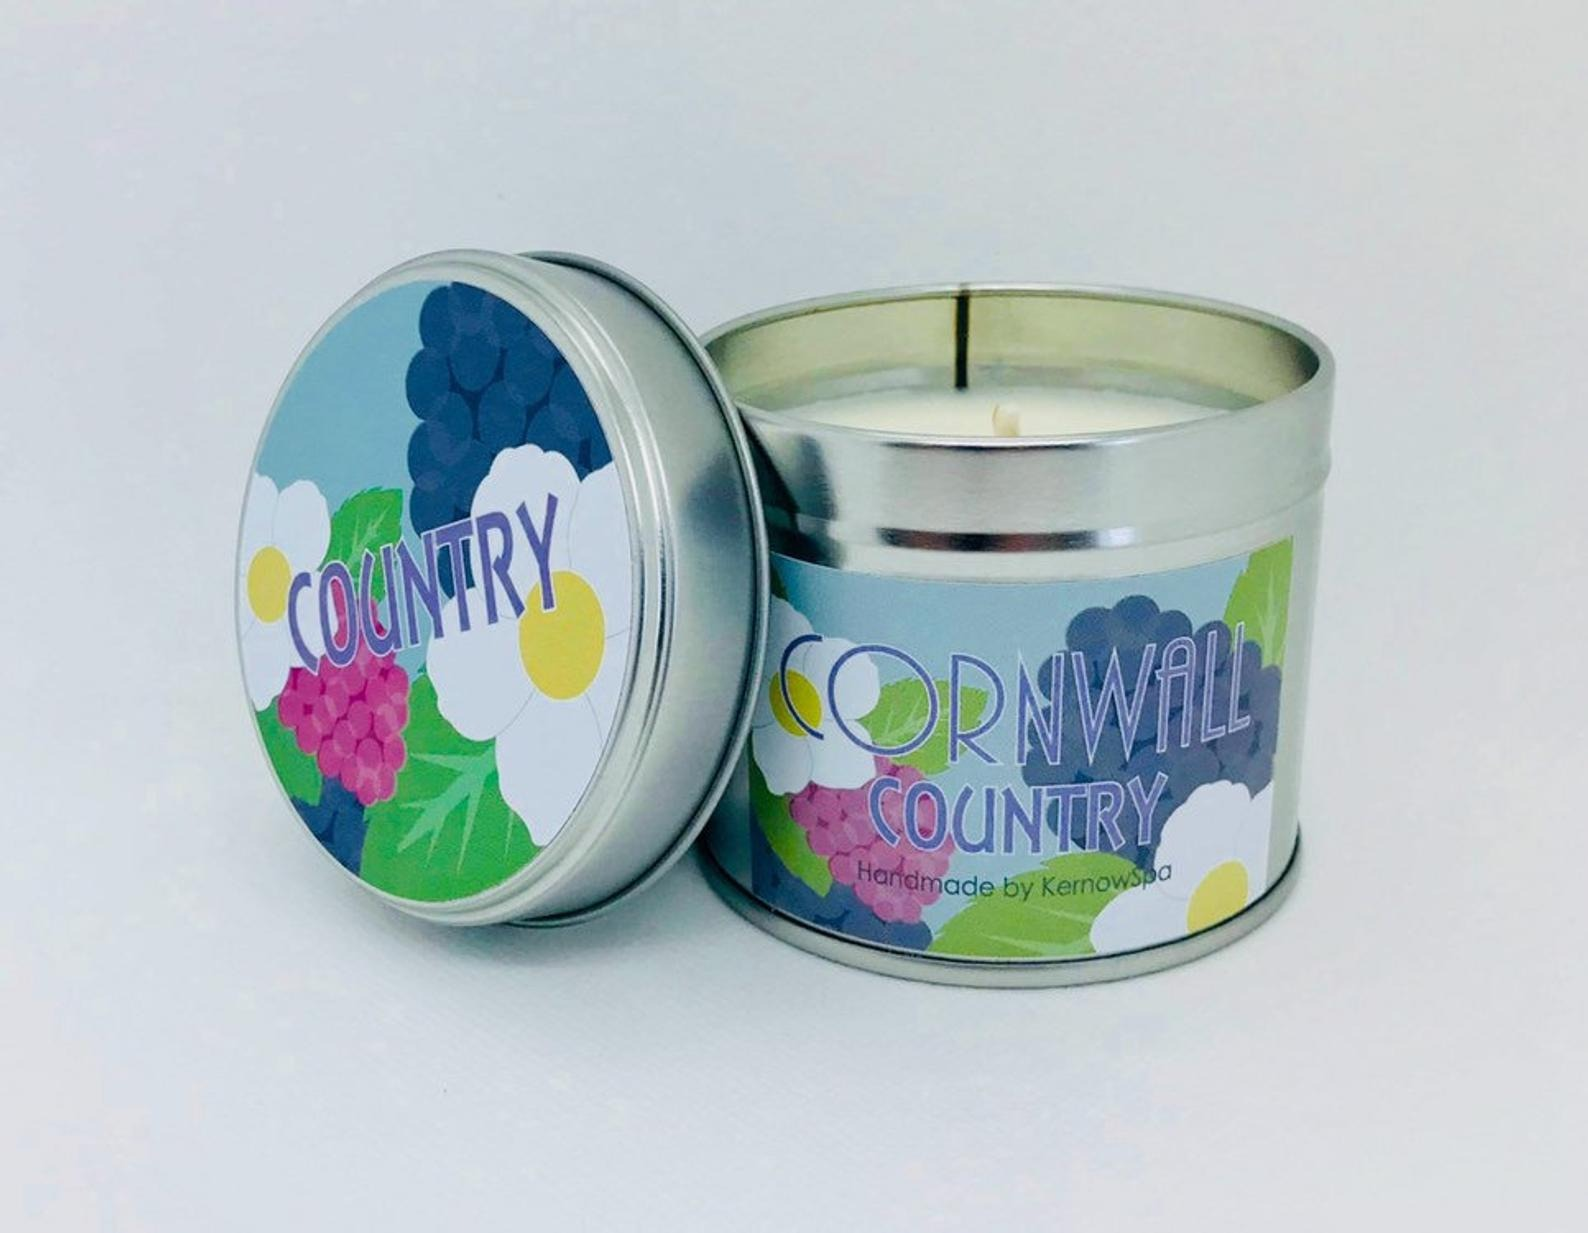 Flossie & Fred Cornwall Country Candle Blackberry & Bay